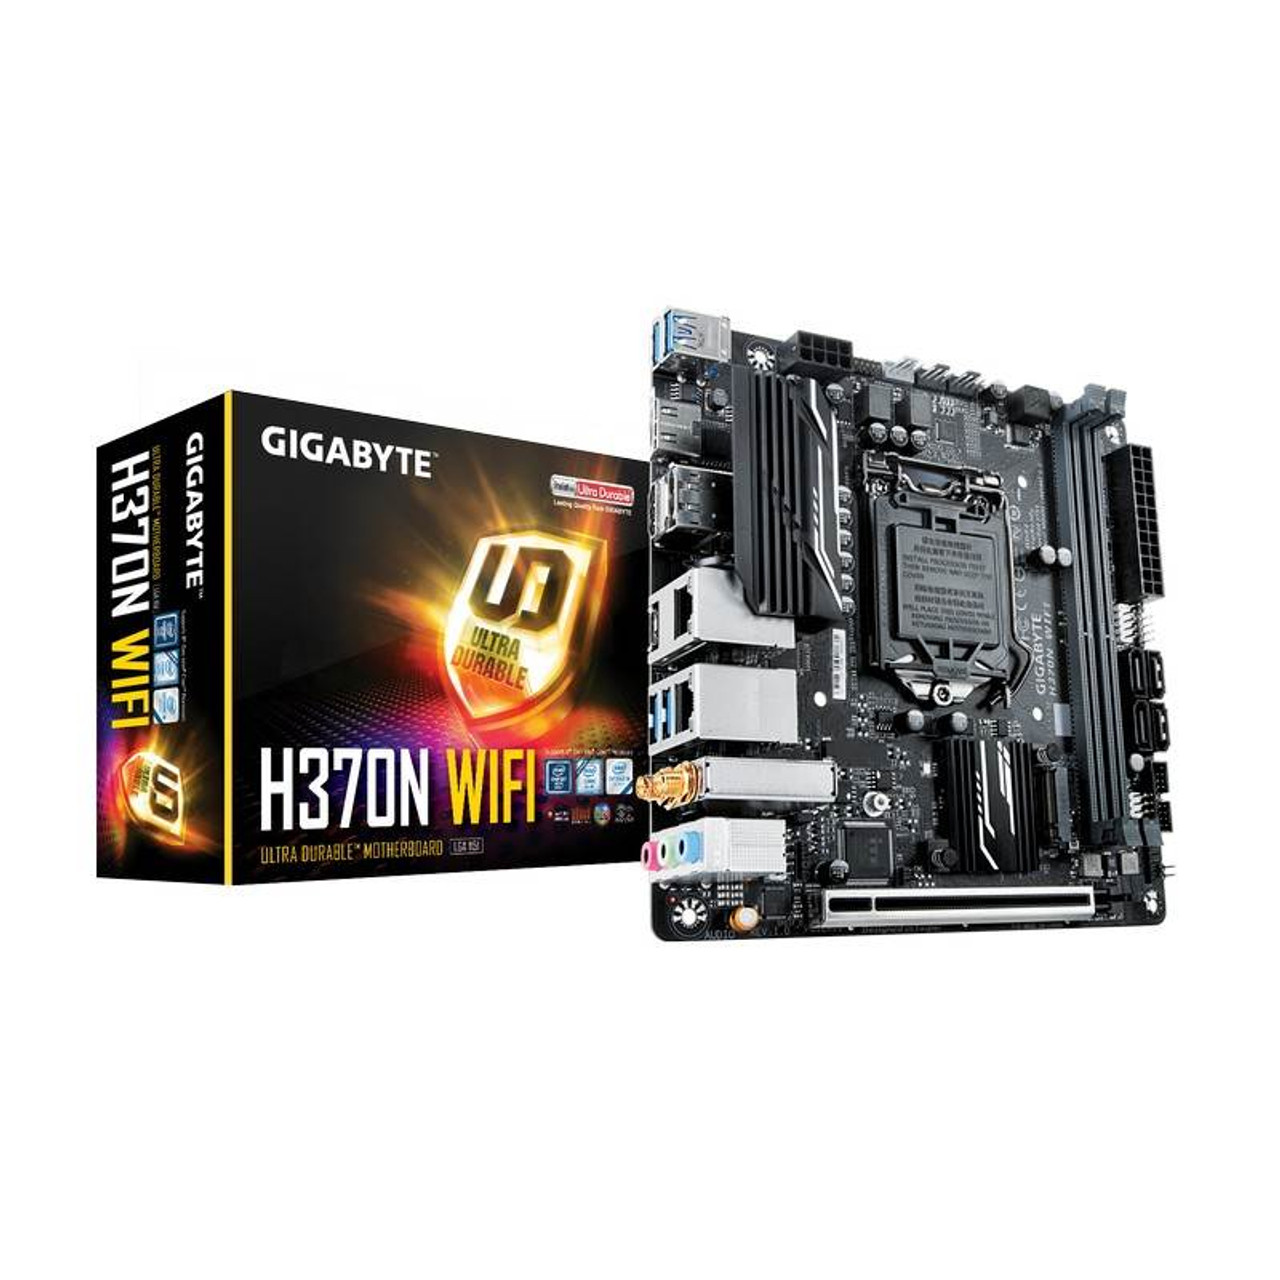 Image for Gigabyte H370N WIFI LGA 1151-2 Mini ITX Motherboard CX Computer Superstore